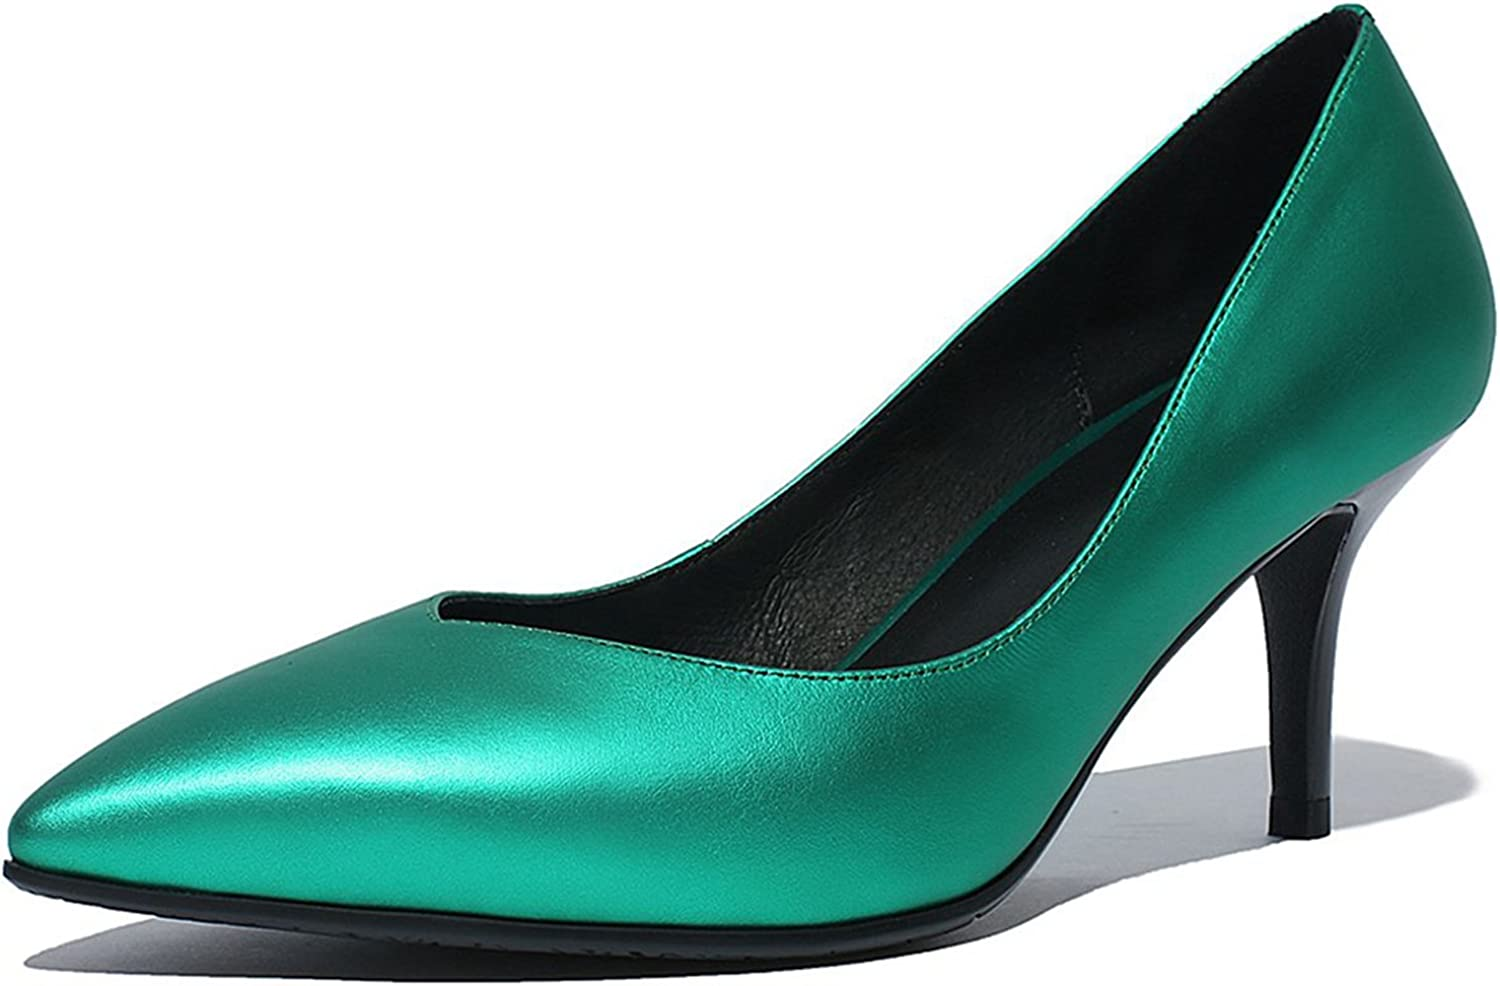 VIMISAOI Women's Genuine Leather Pointed Toe Stiletto Dress Pumps shoes